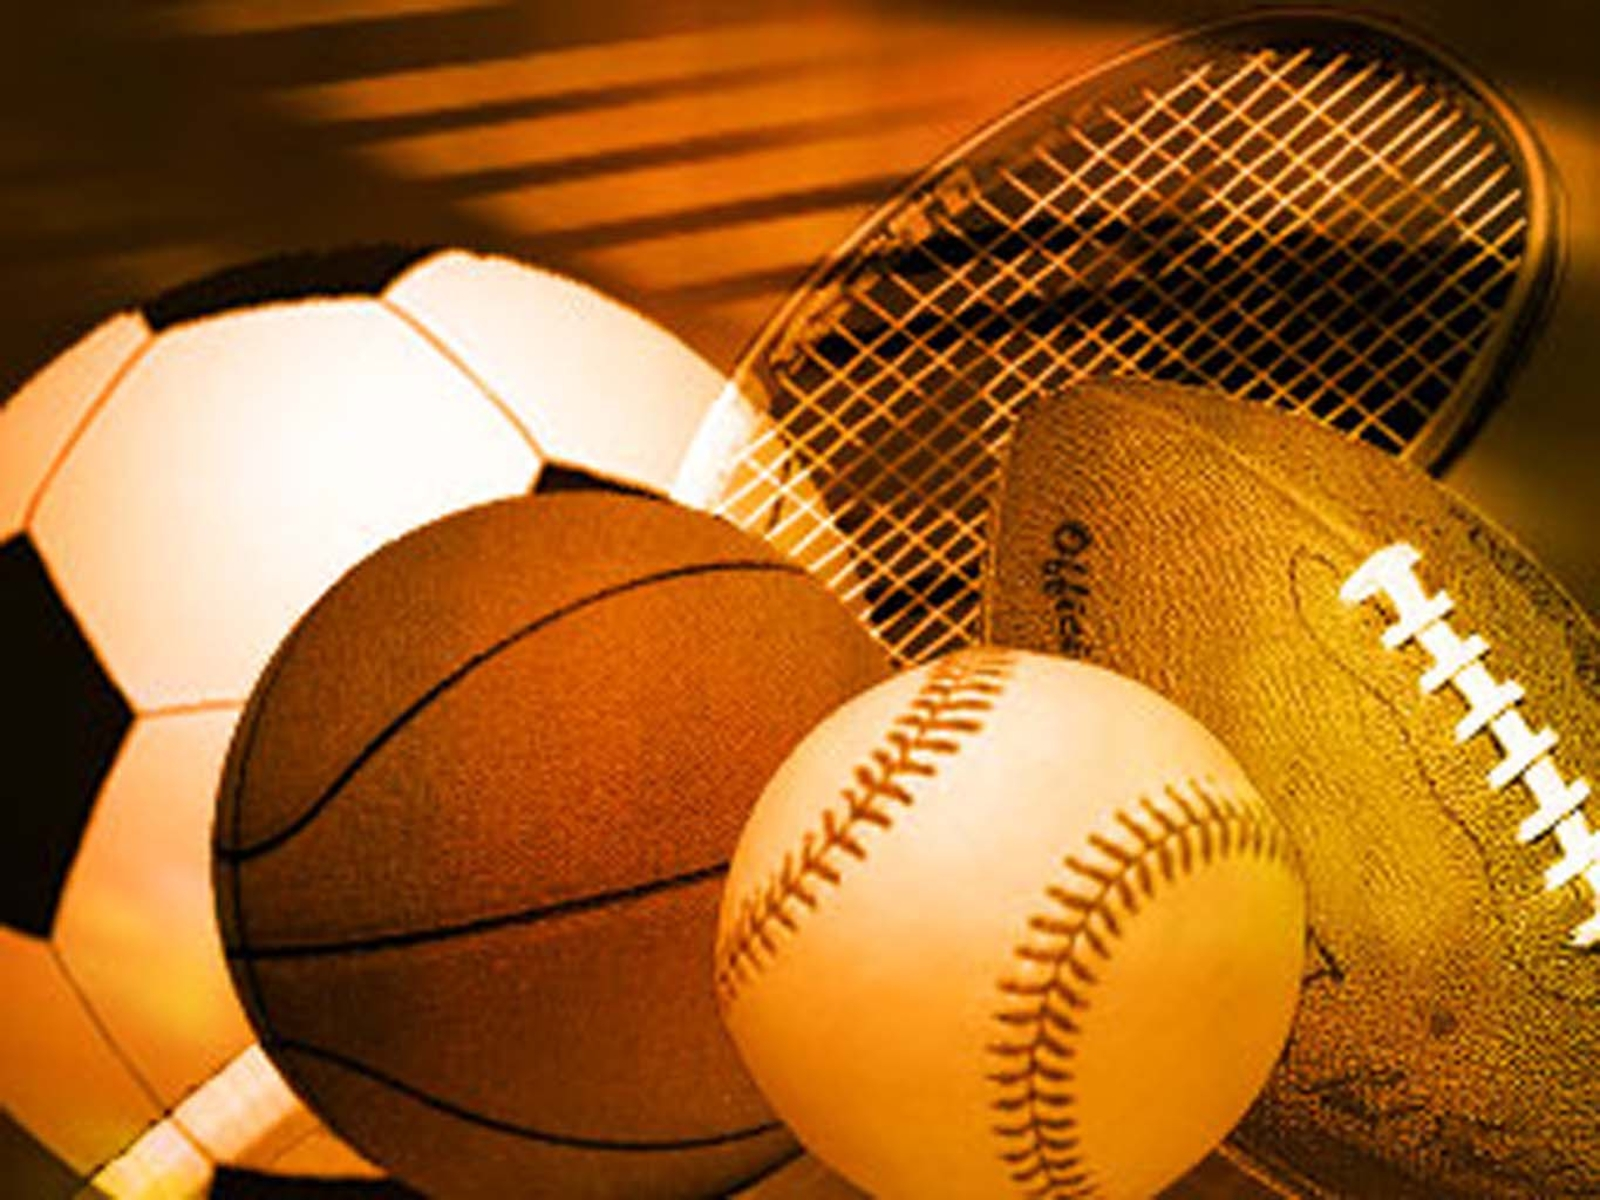 Sports Computer Wallpaper: Free Sports Backgrounds